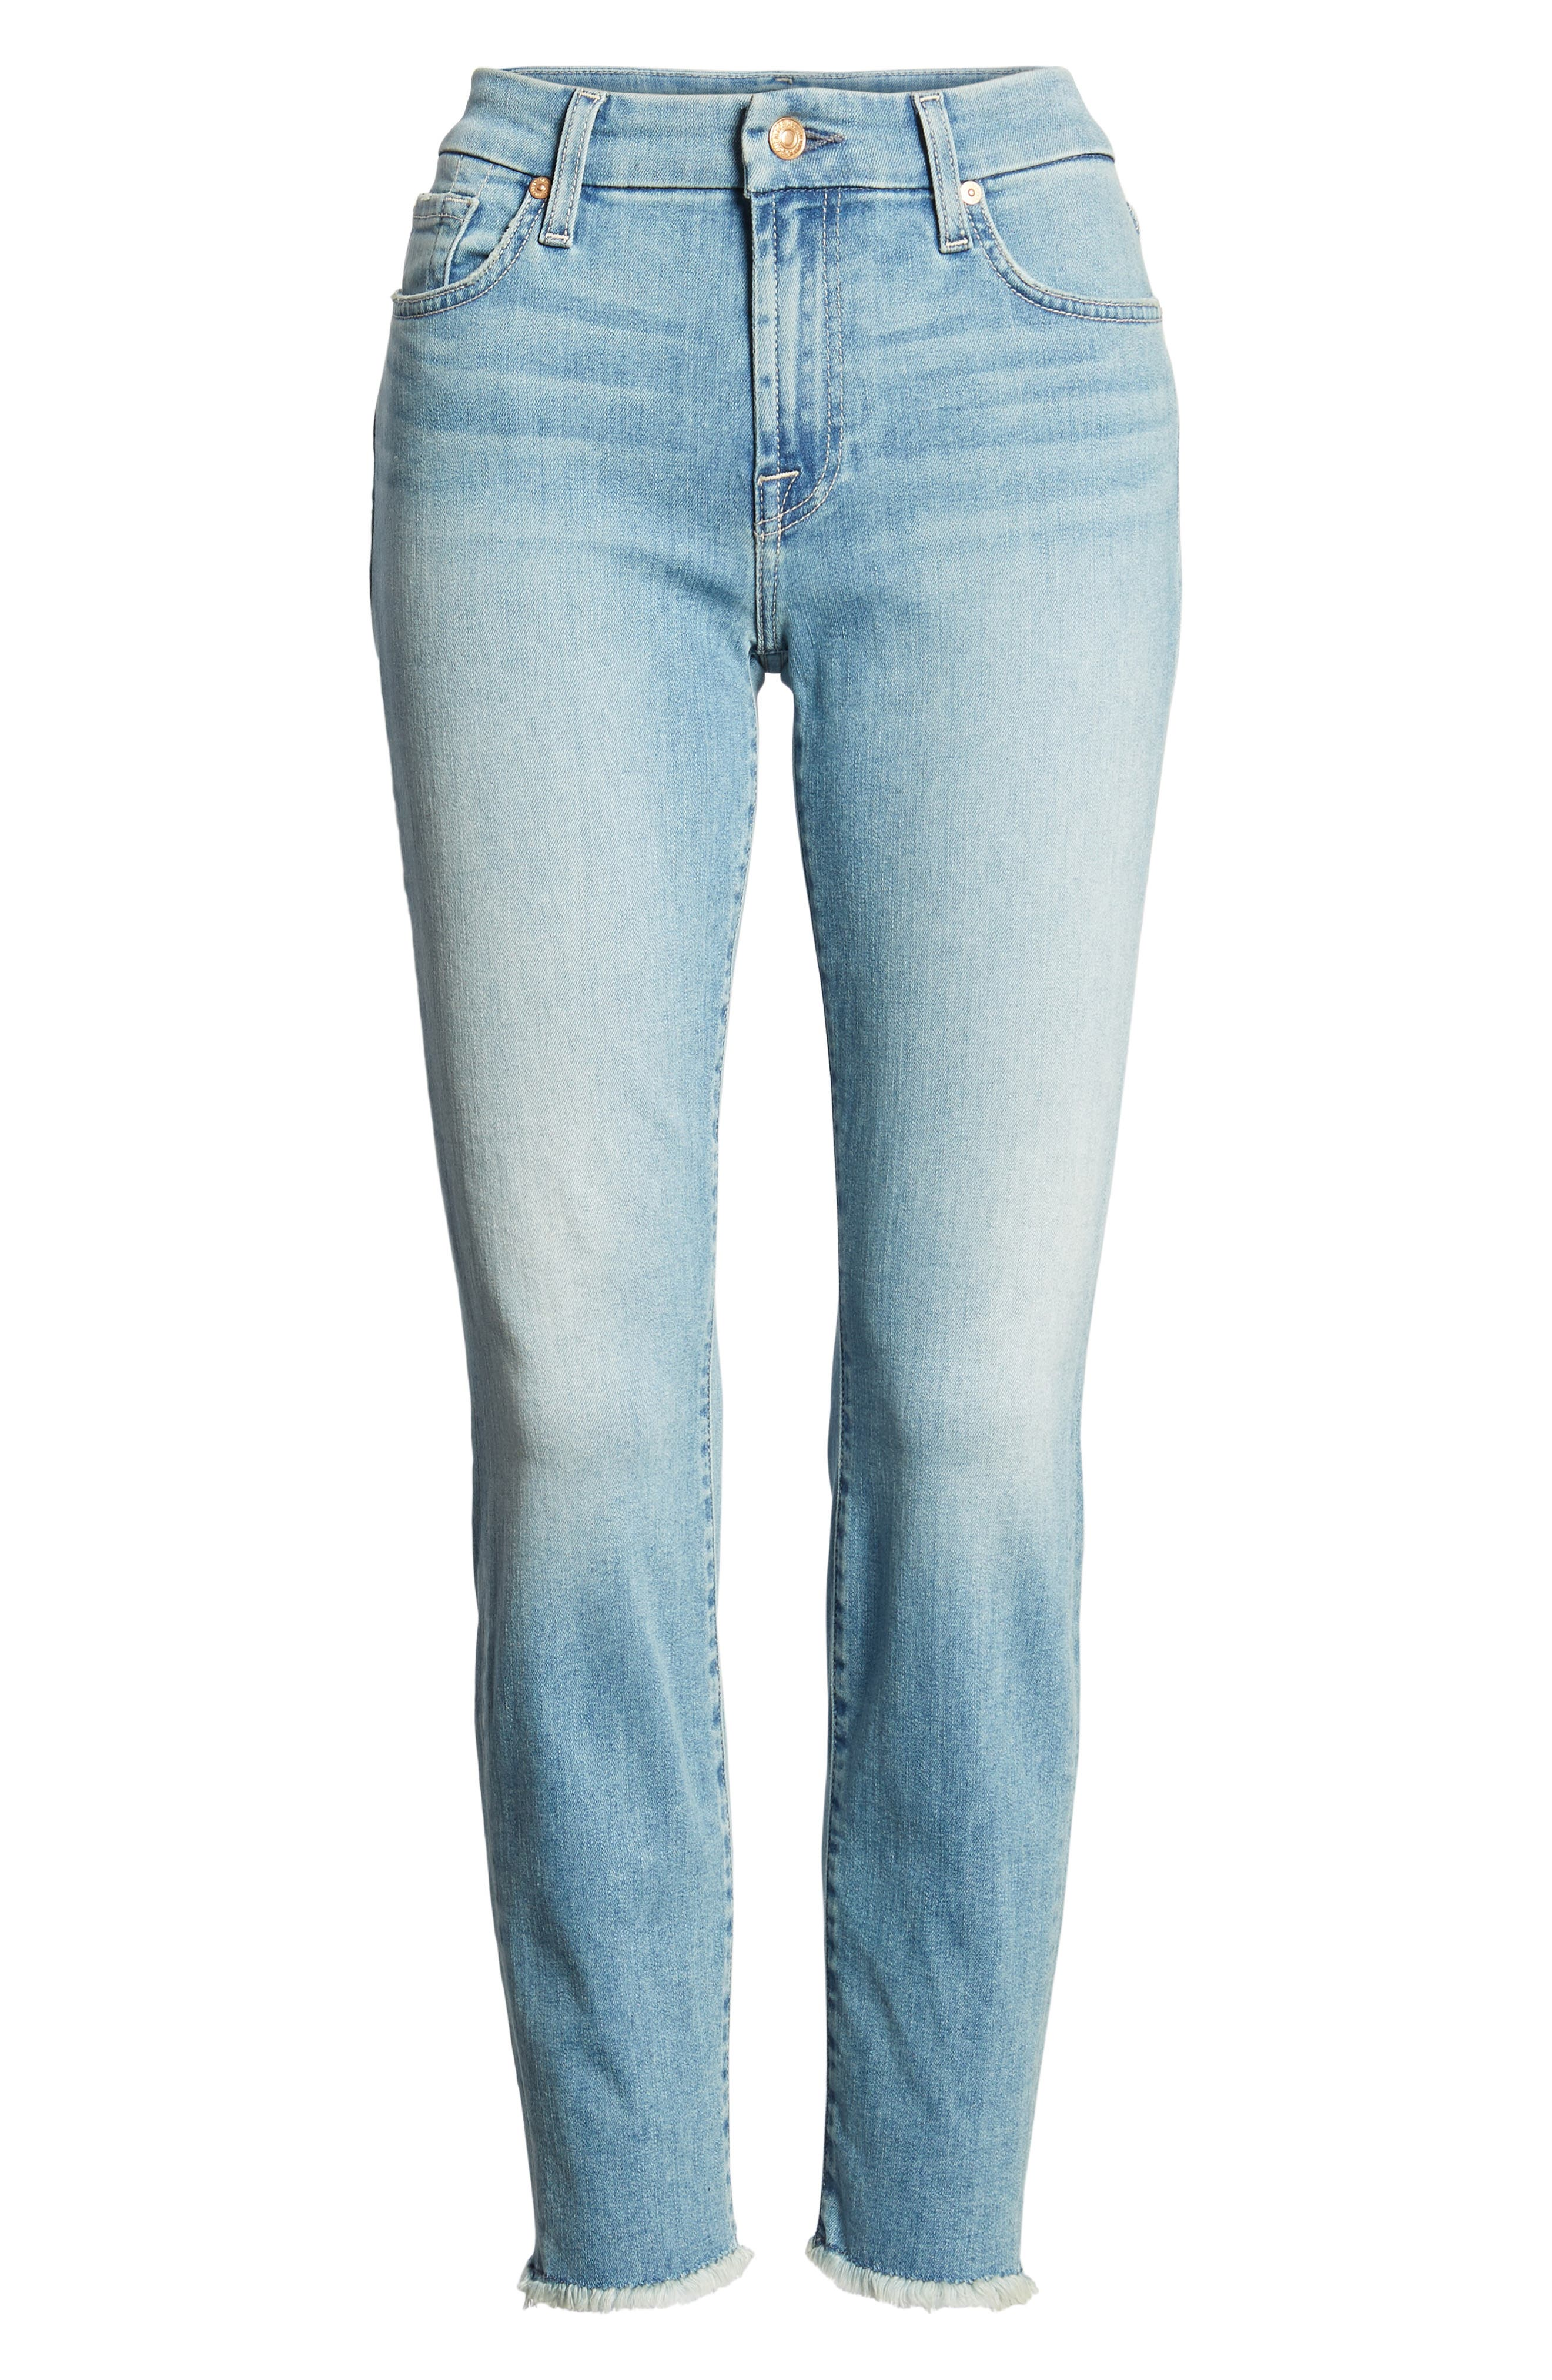 Kimmie Crop Straight Leg Jeans,                             Alternate thumbnail 6, color,                             Desert Heights